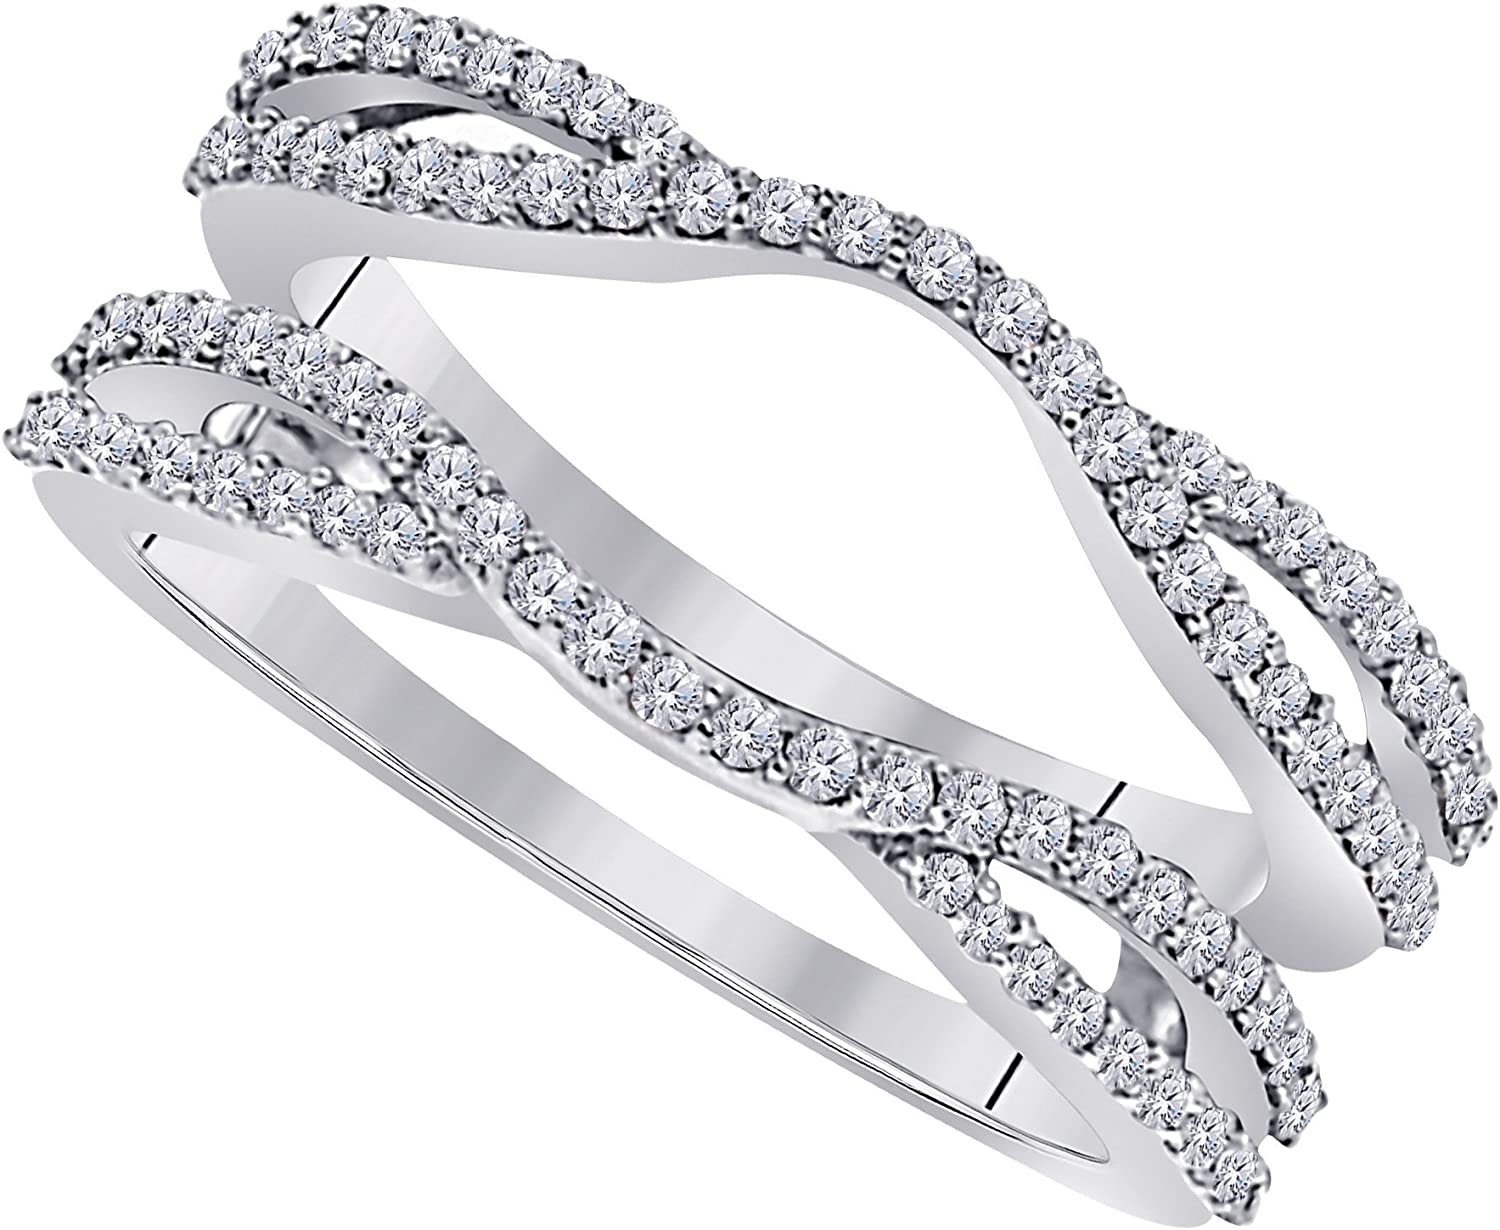 2 ct Solitaire Diamonds Ring Guard Women 14k White Gold Finish Wedding Band